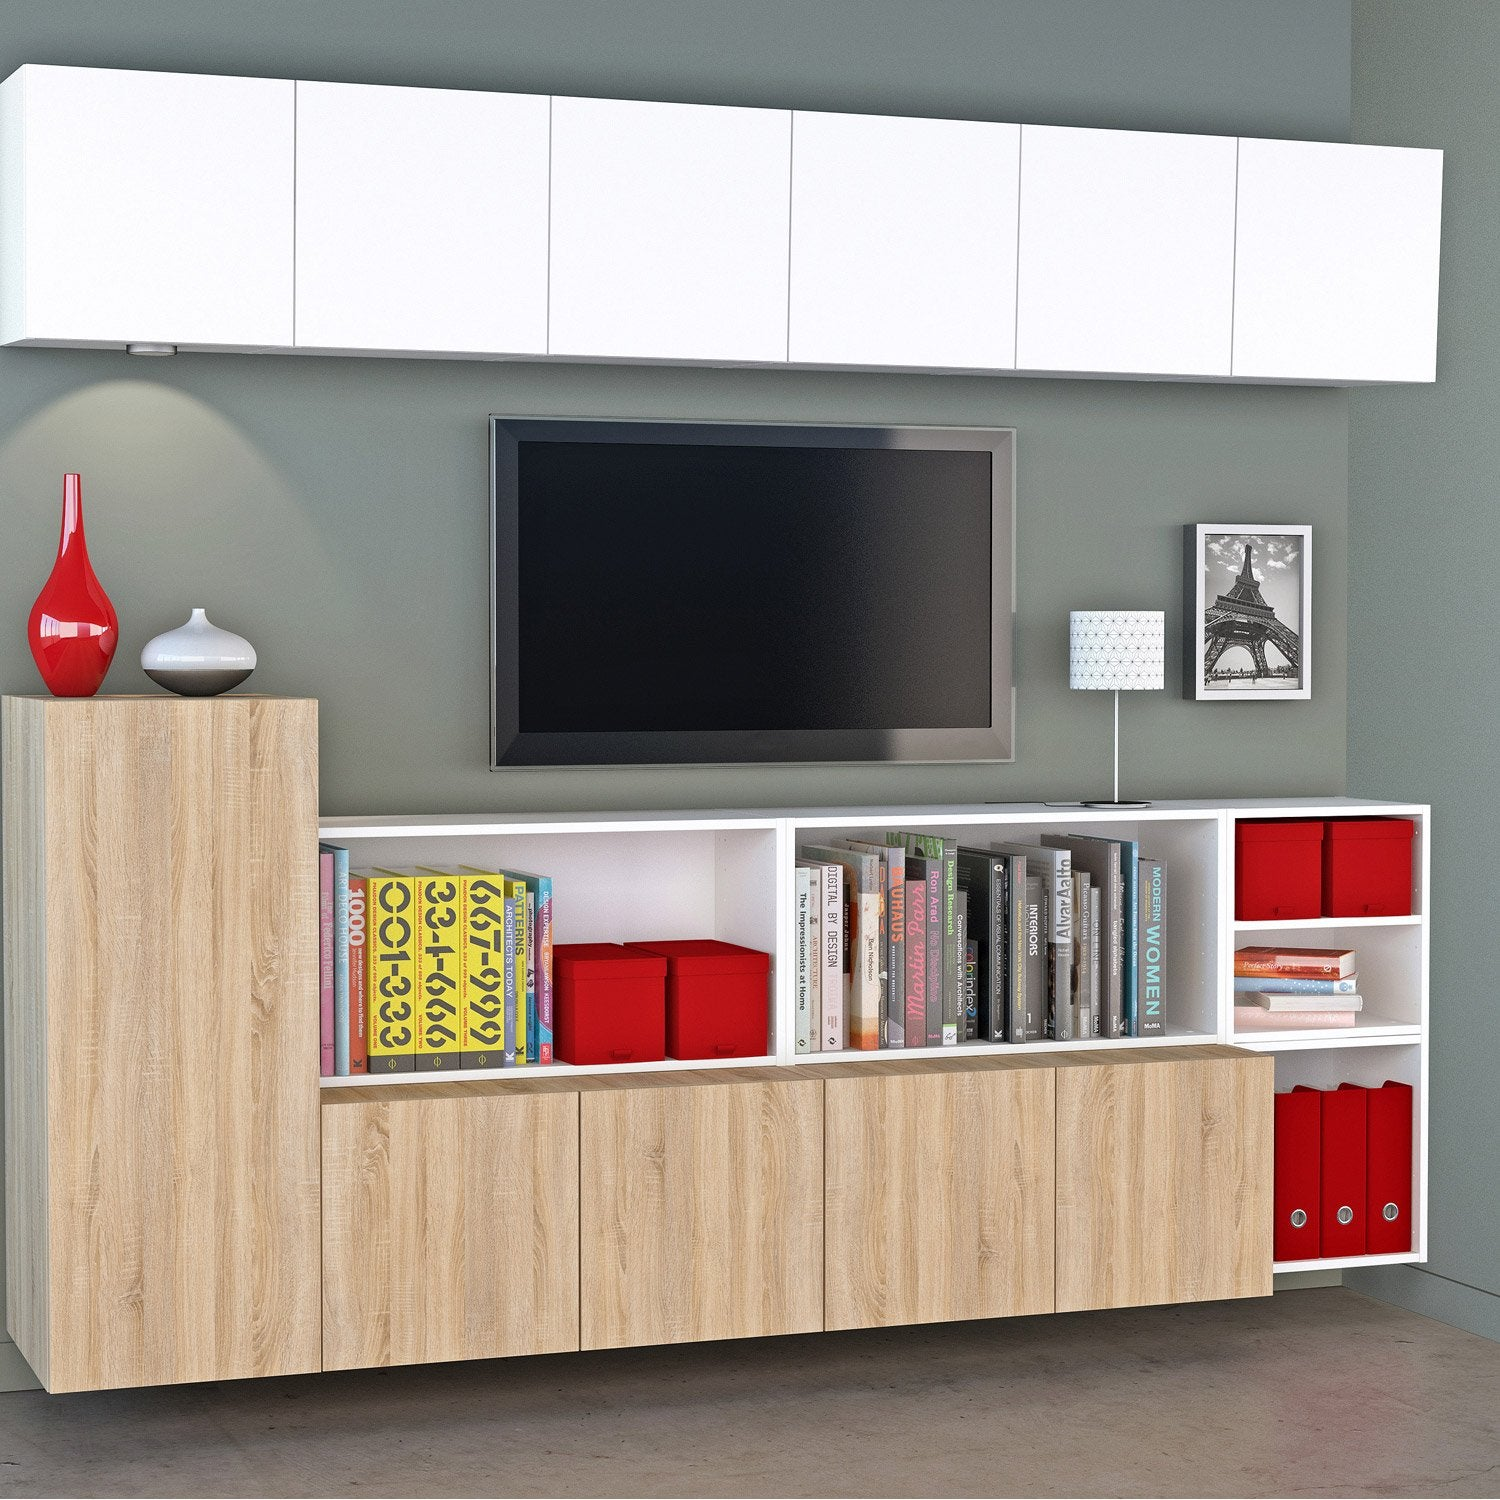 Meuble tv spaceo home effet ch ne leroy merlin for Abat jour leroy merlin